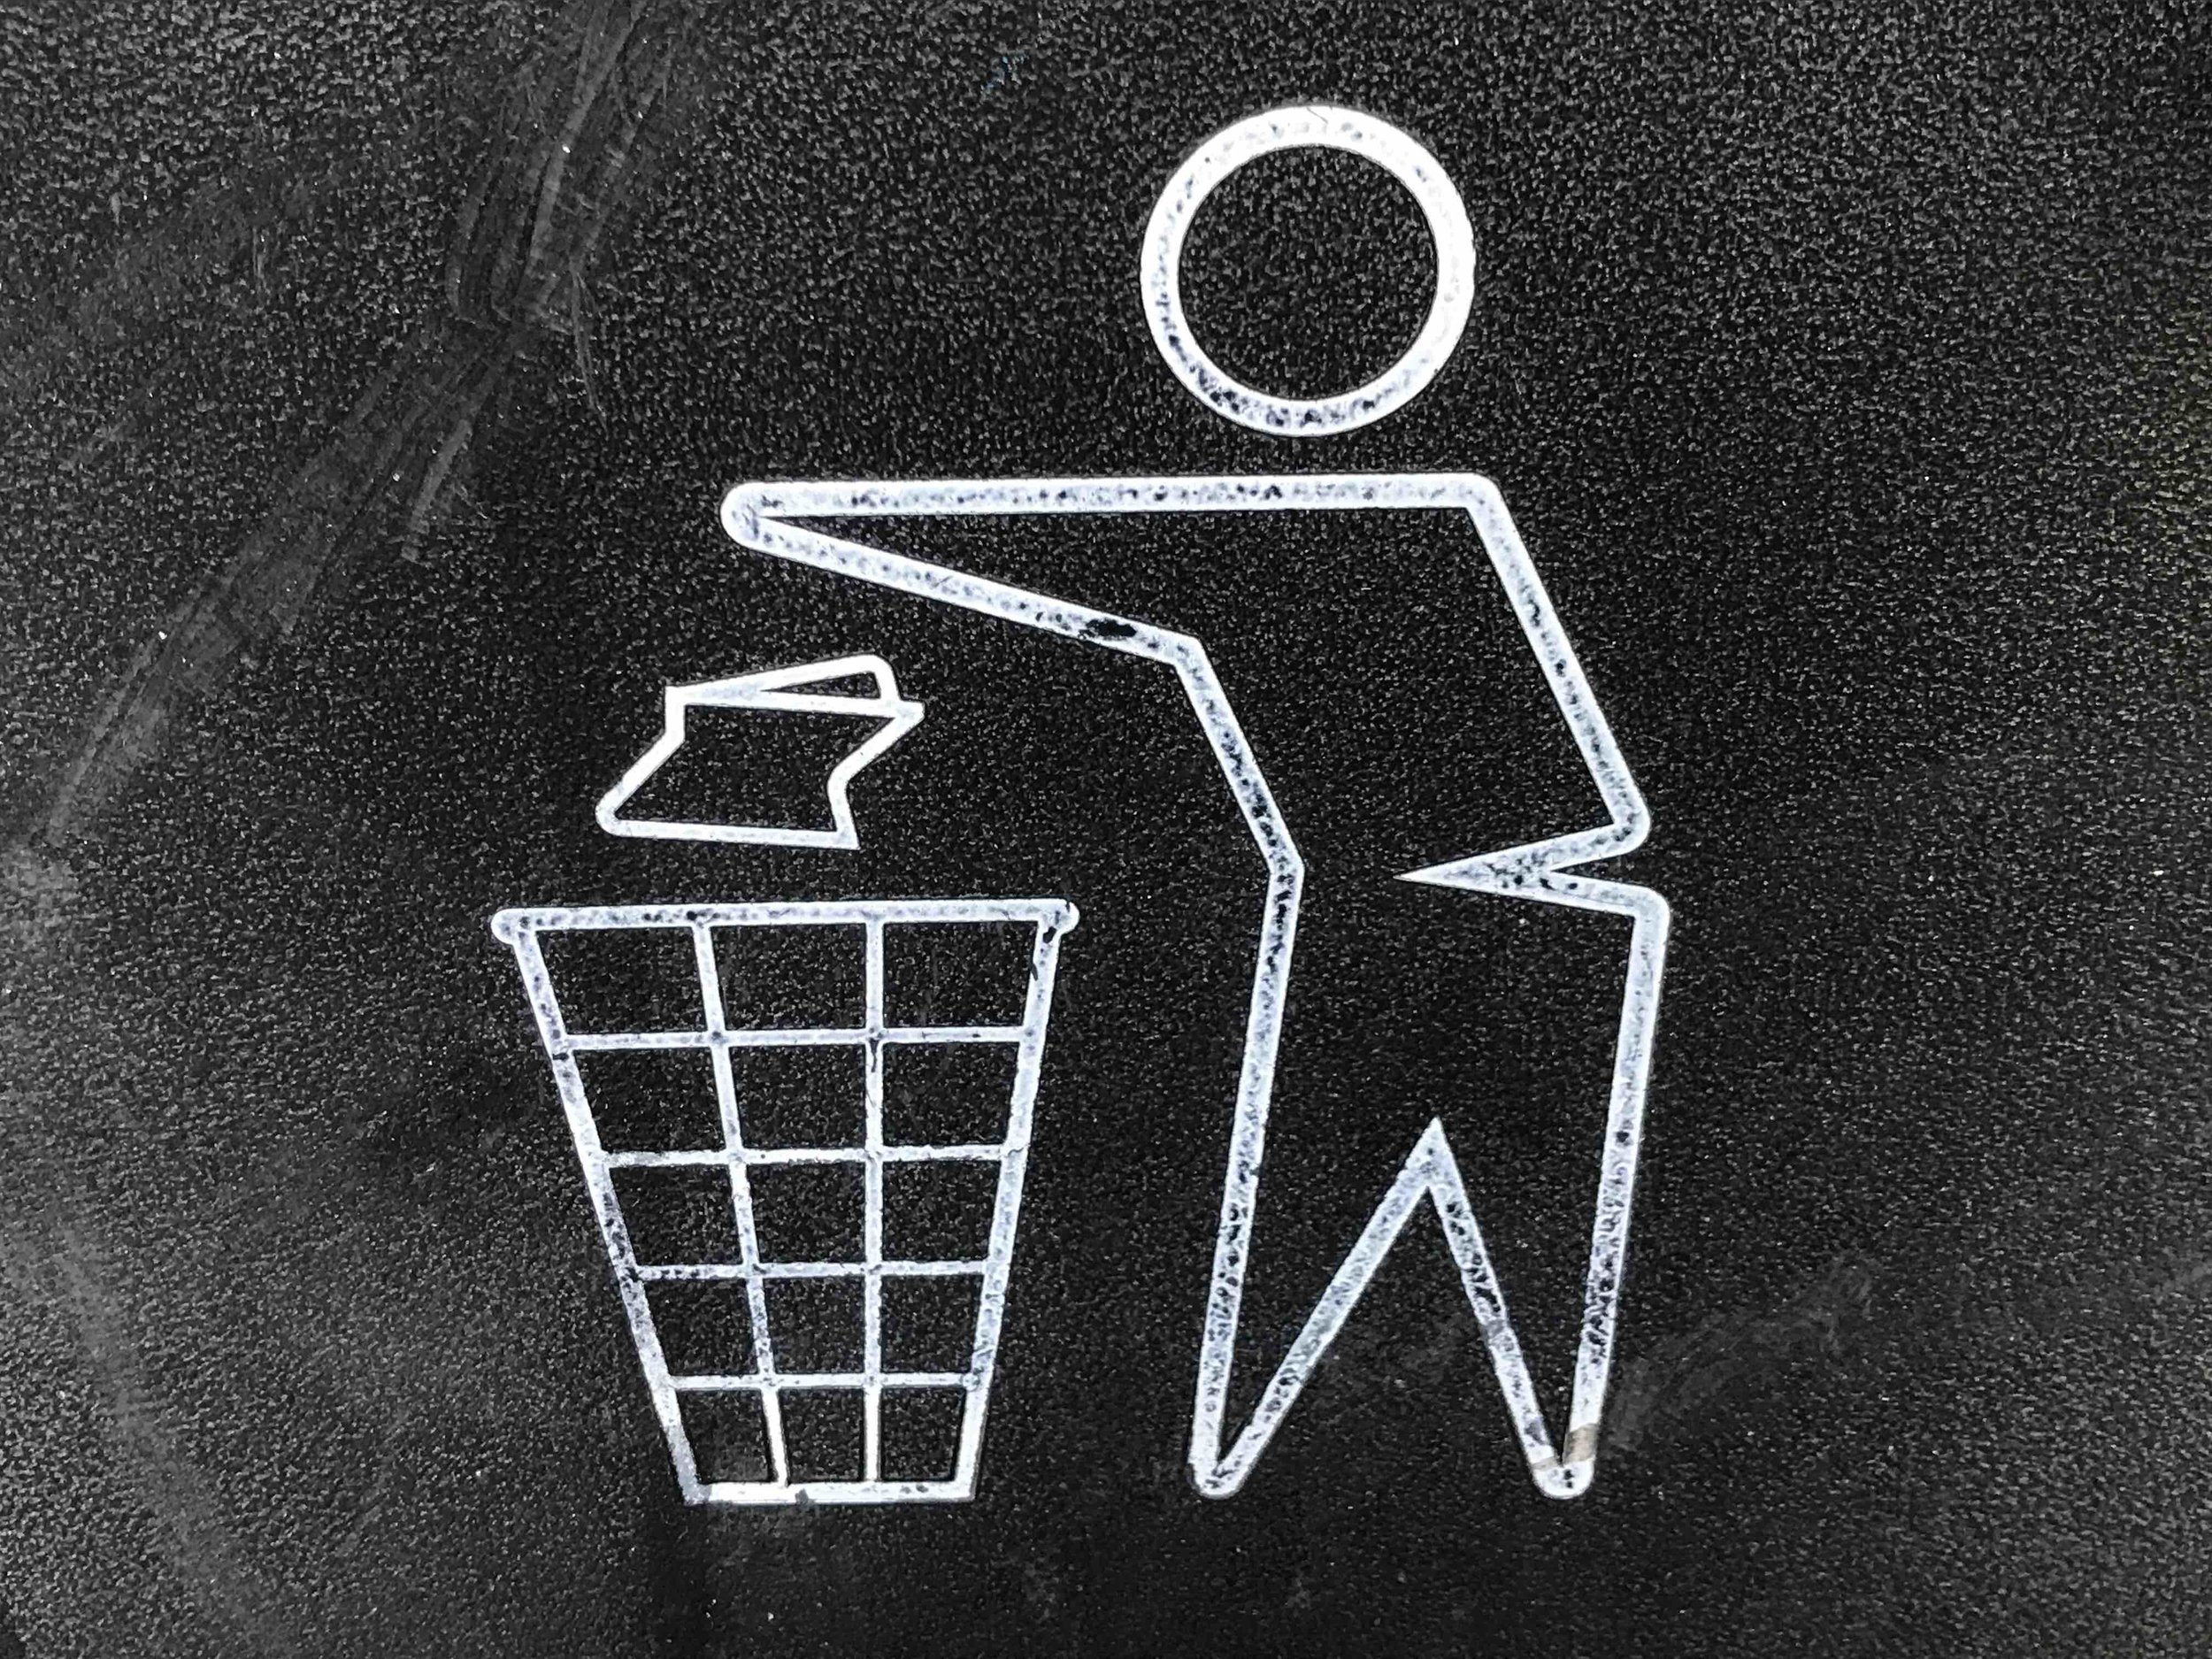 Reduce Re-use Recycle -